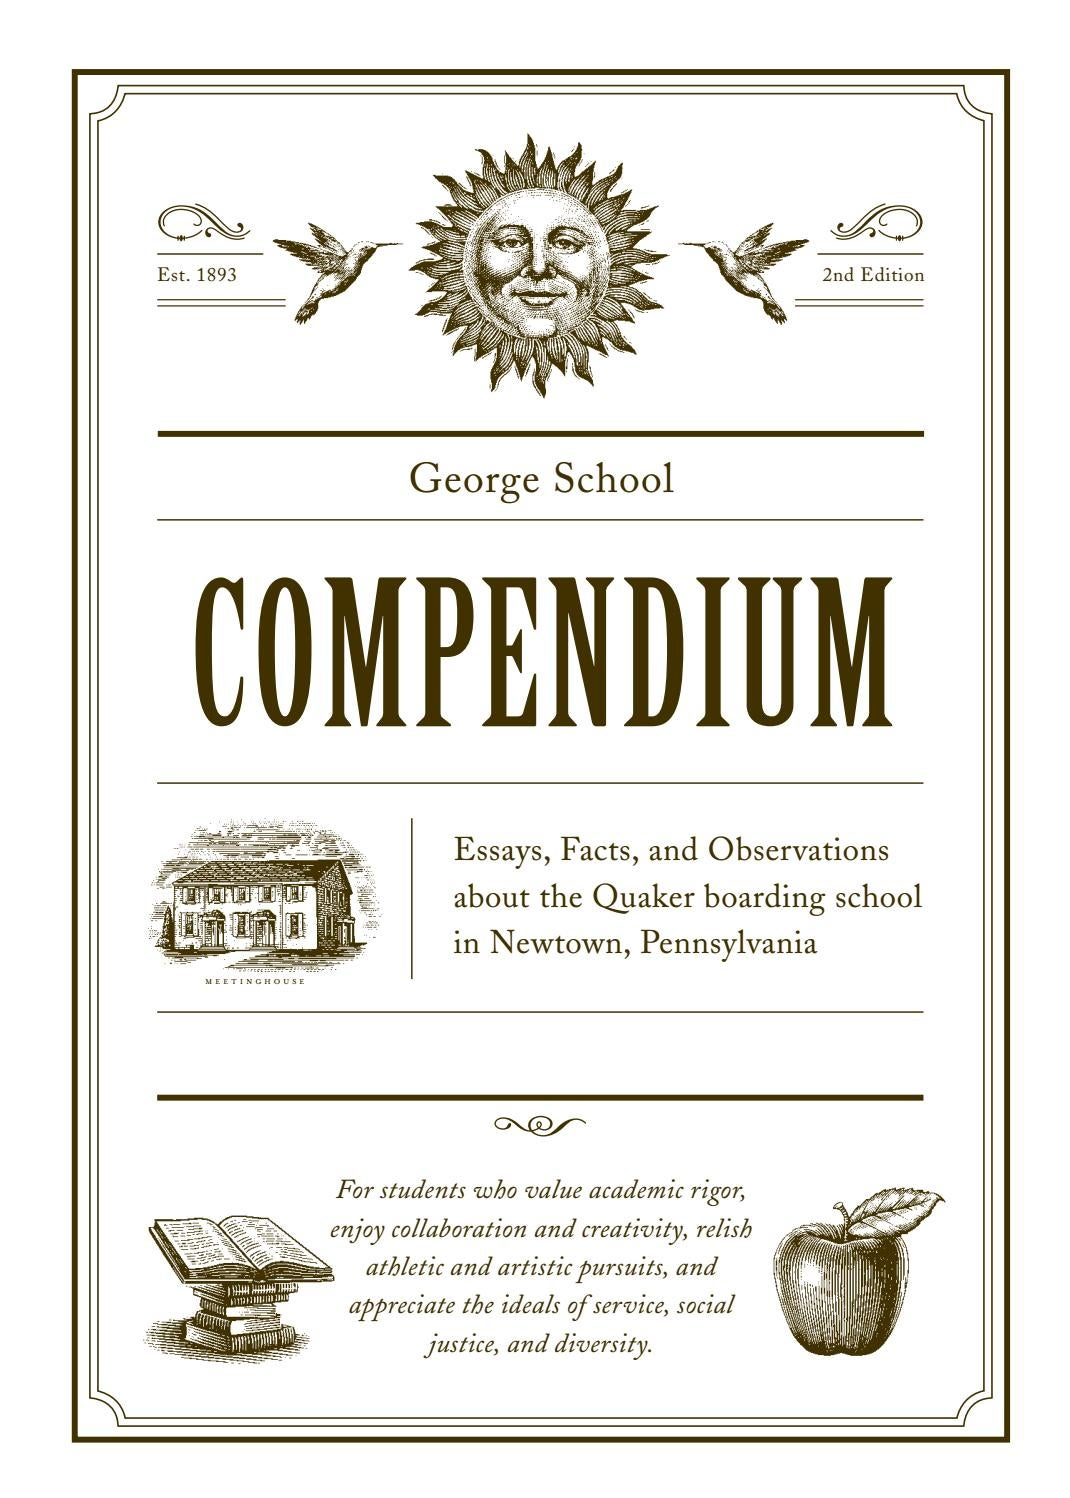 compendium of essays unique publishers Main street rag publishing company is an independent publisher of poetry, fiction, and creative nonfiction in our books and literary magazines as well as a print/bindery/productio.